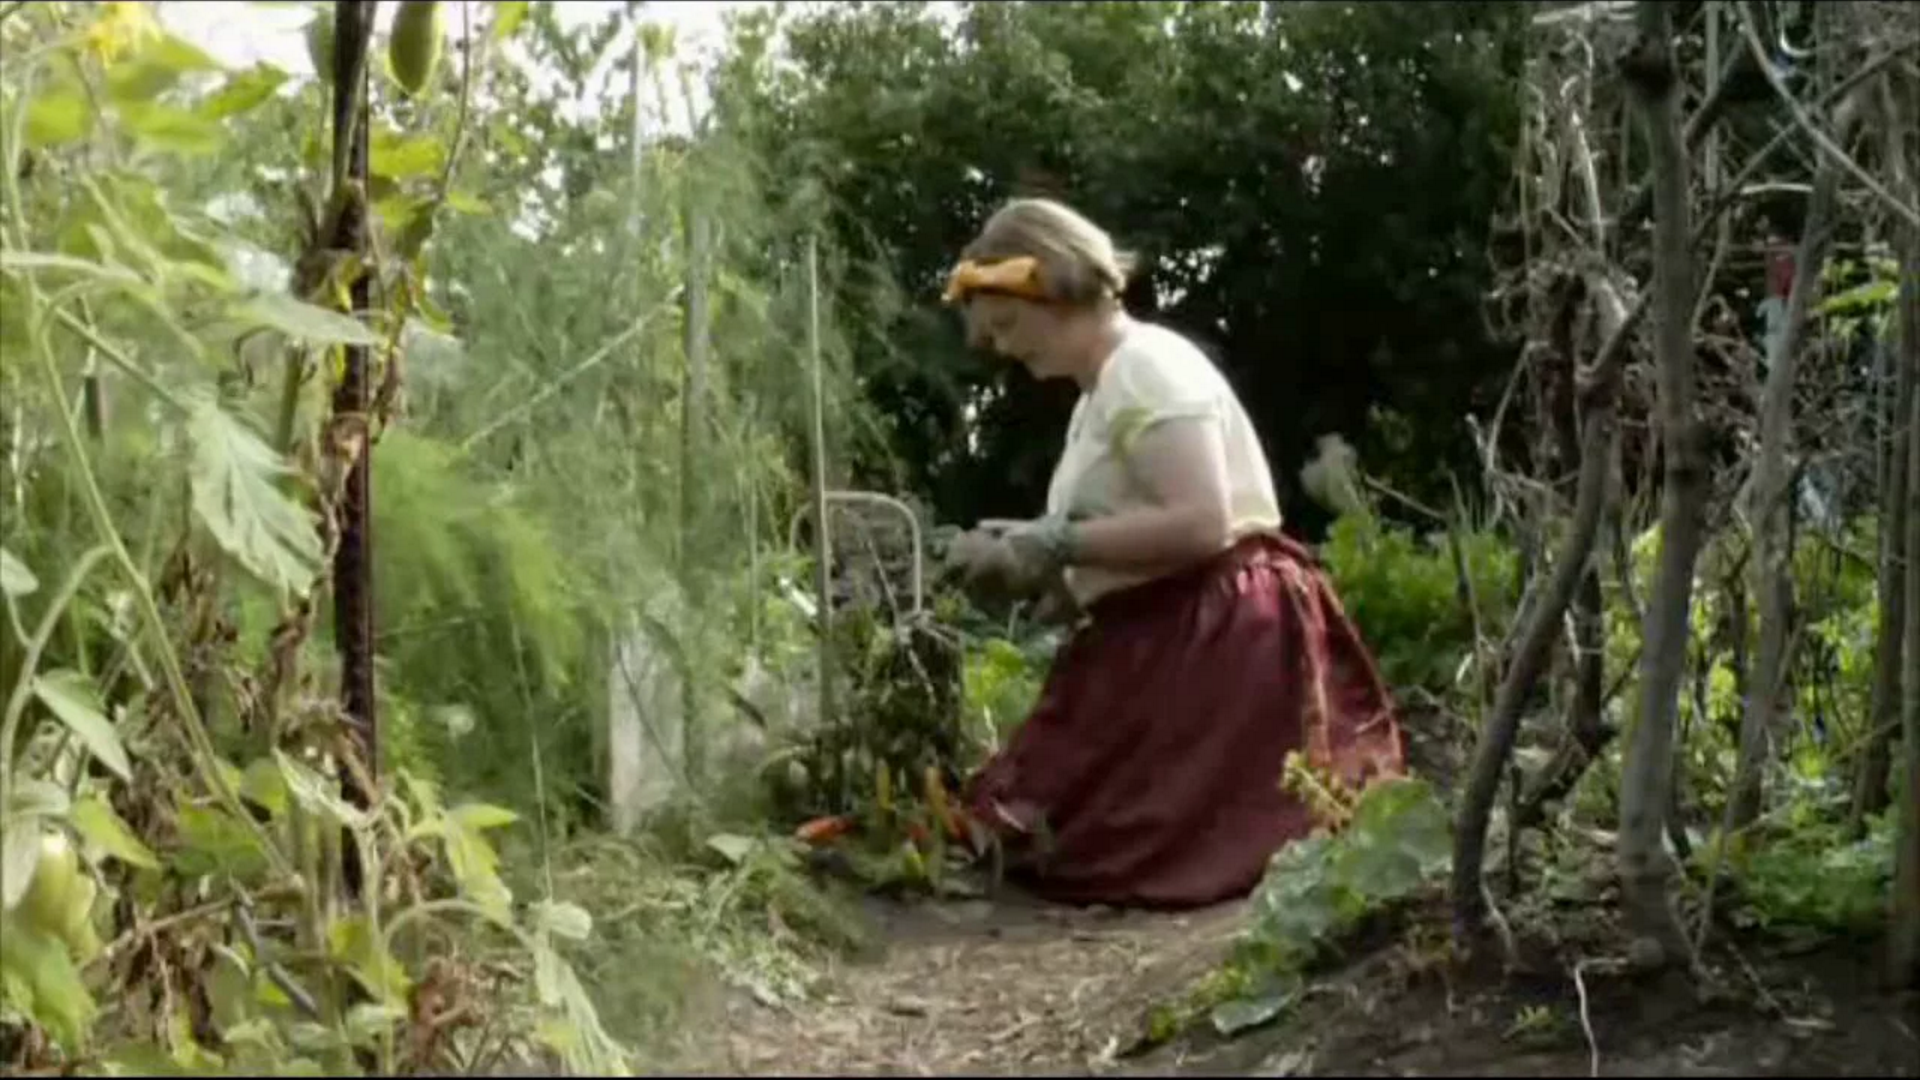 Screen capture from How Does Your Garden Grow